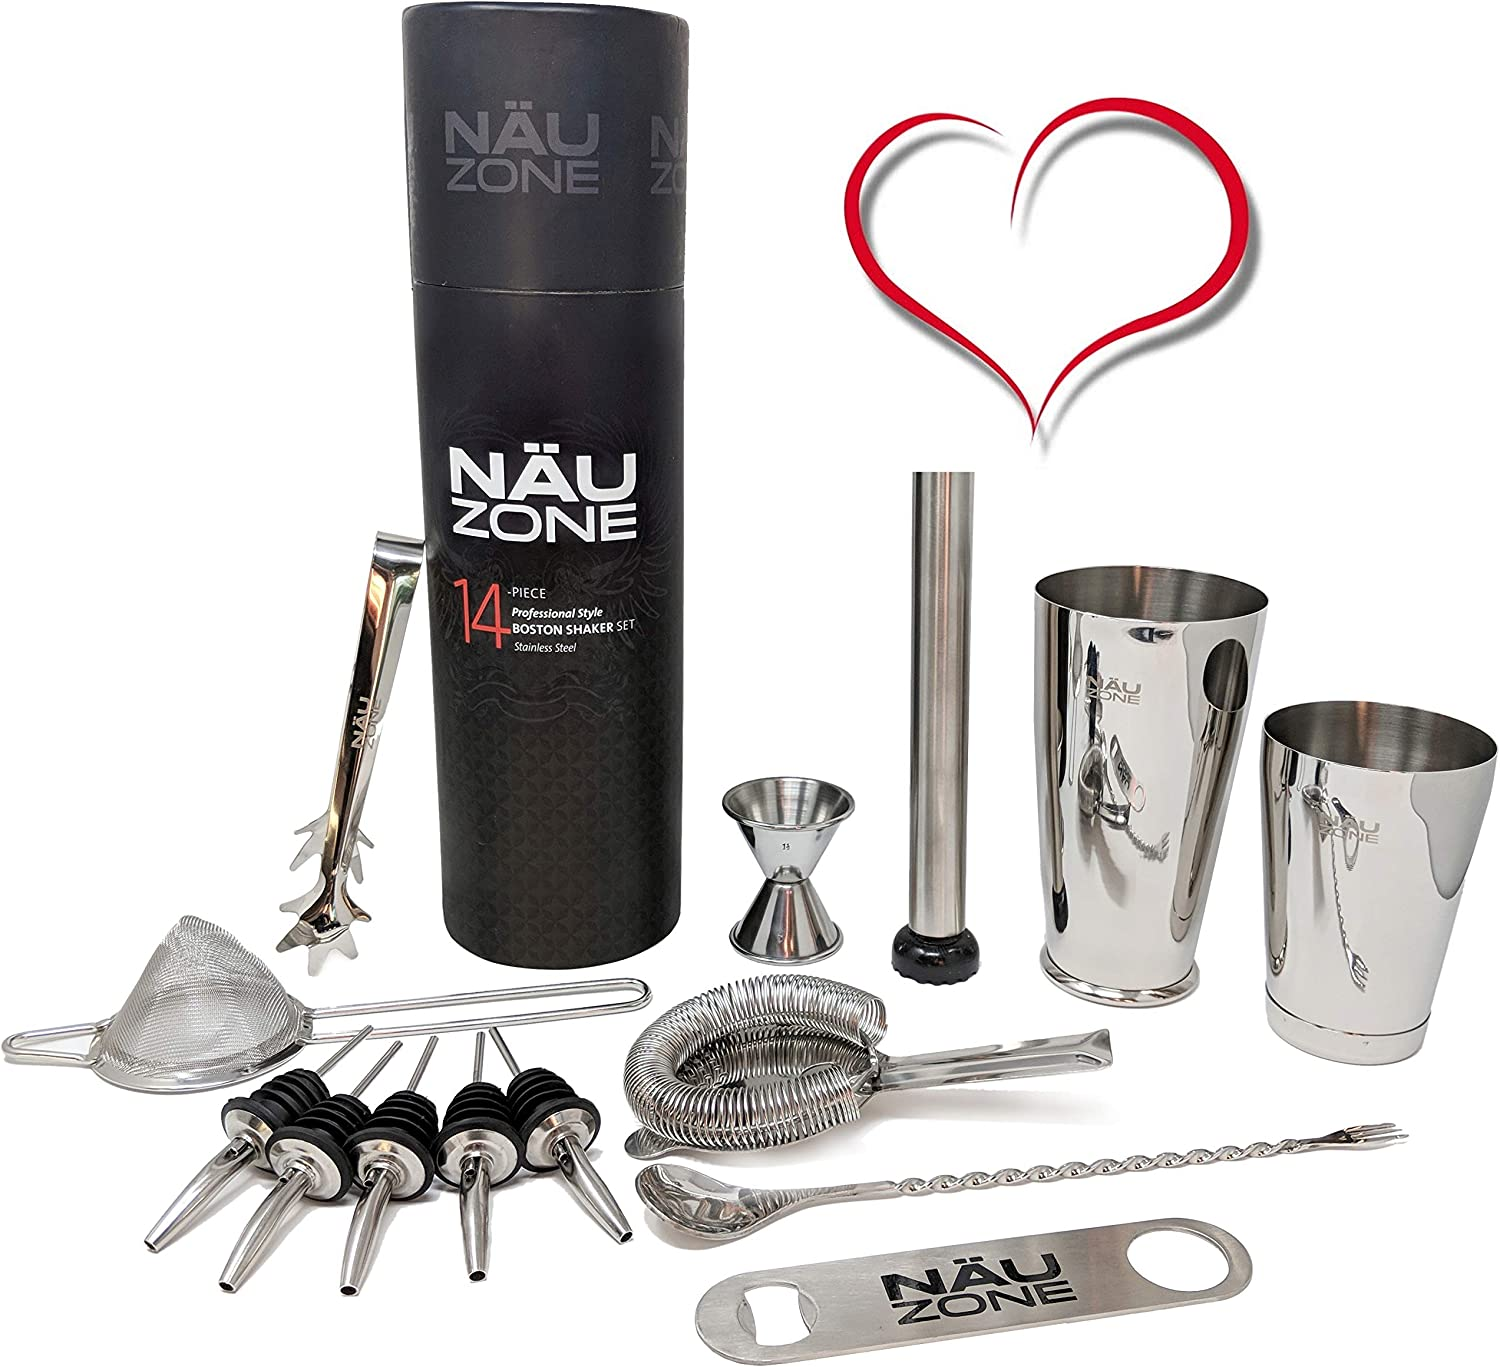 NÄU Zone's bartender kit